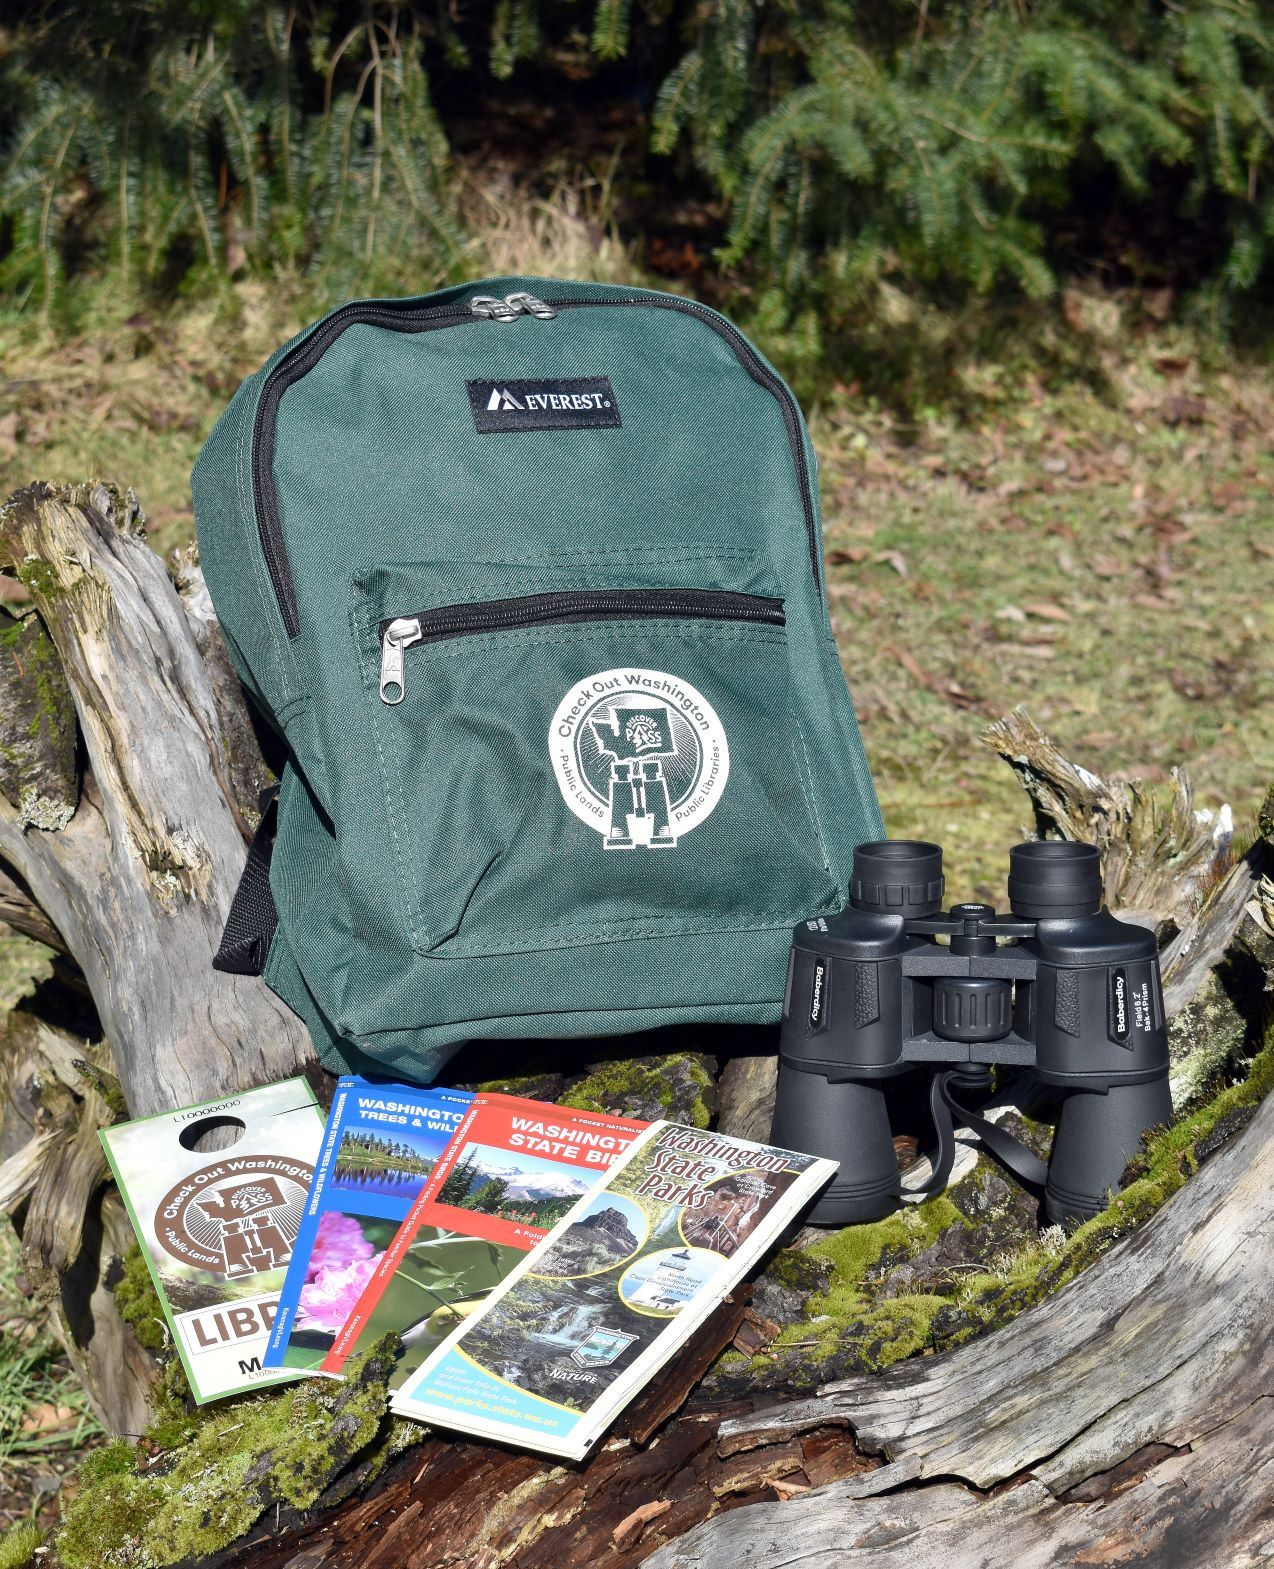 Check Out WA Backpack on a log with discover pass, brochures, binoculars